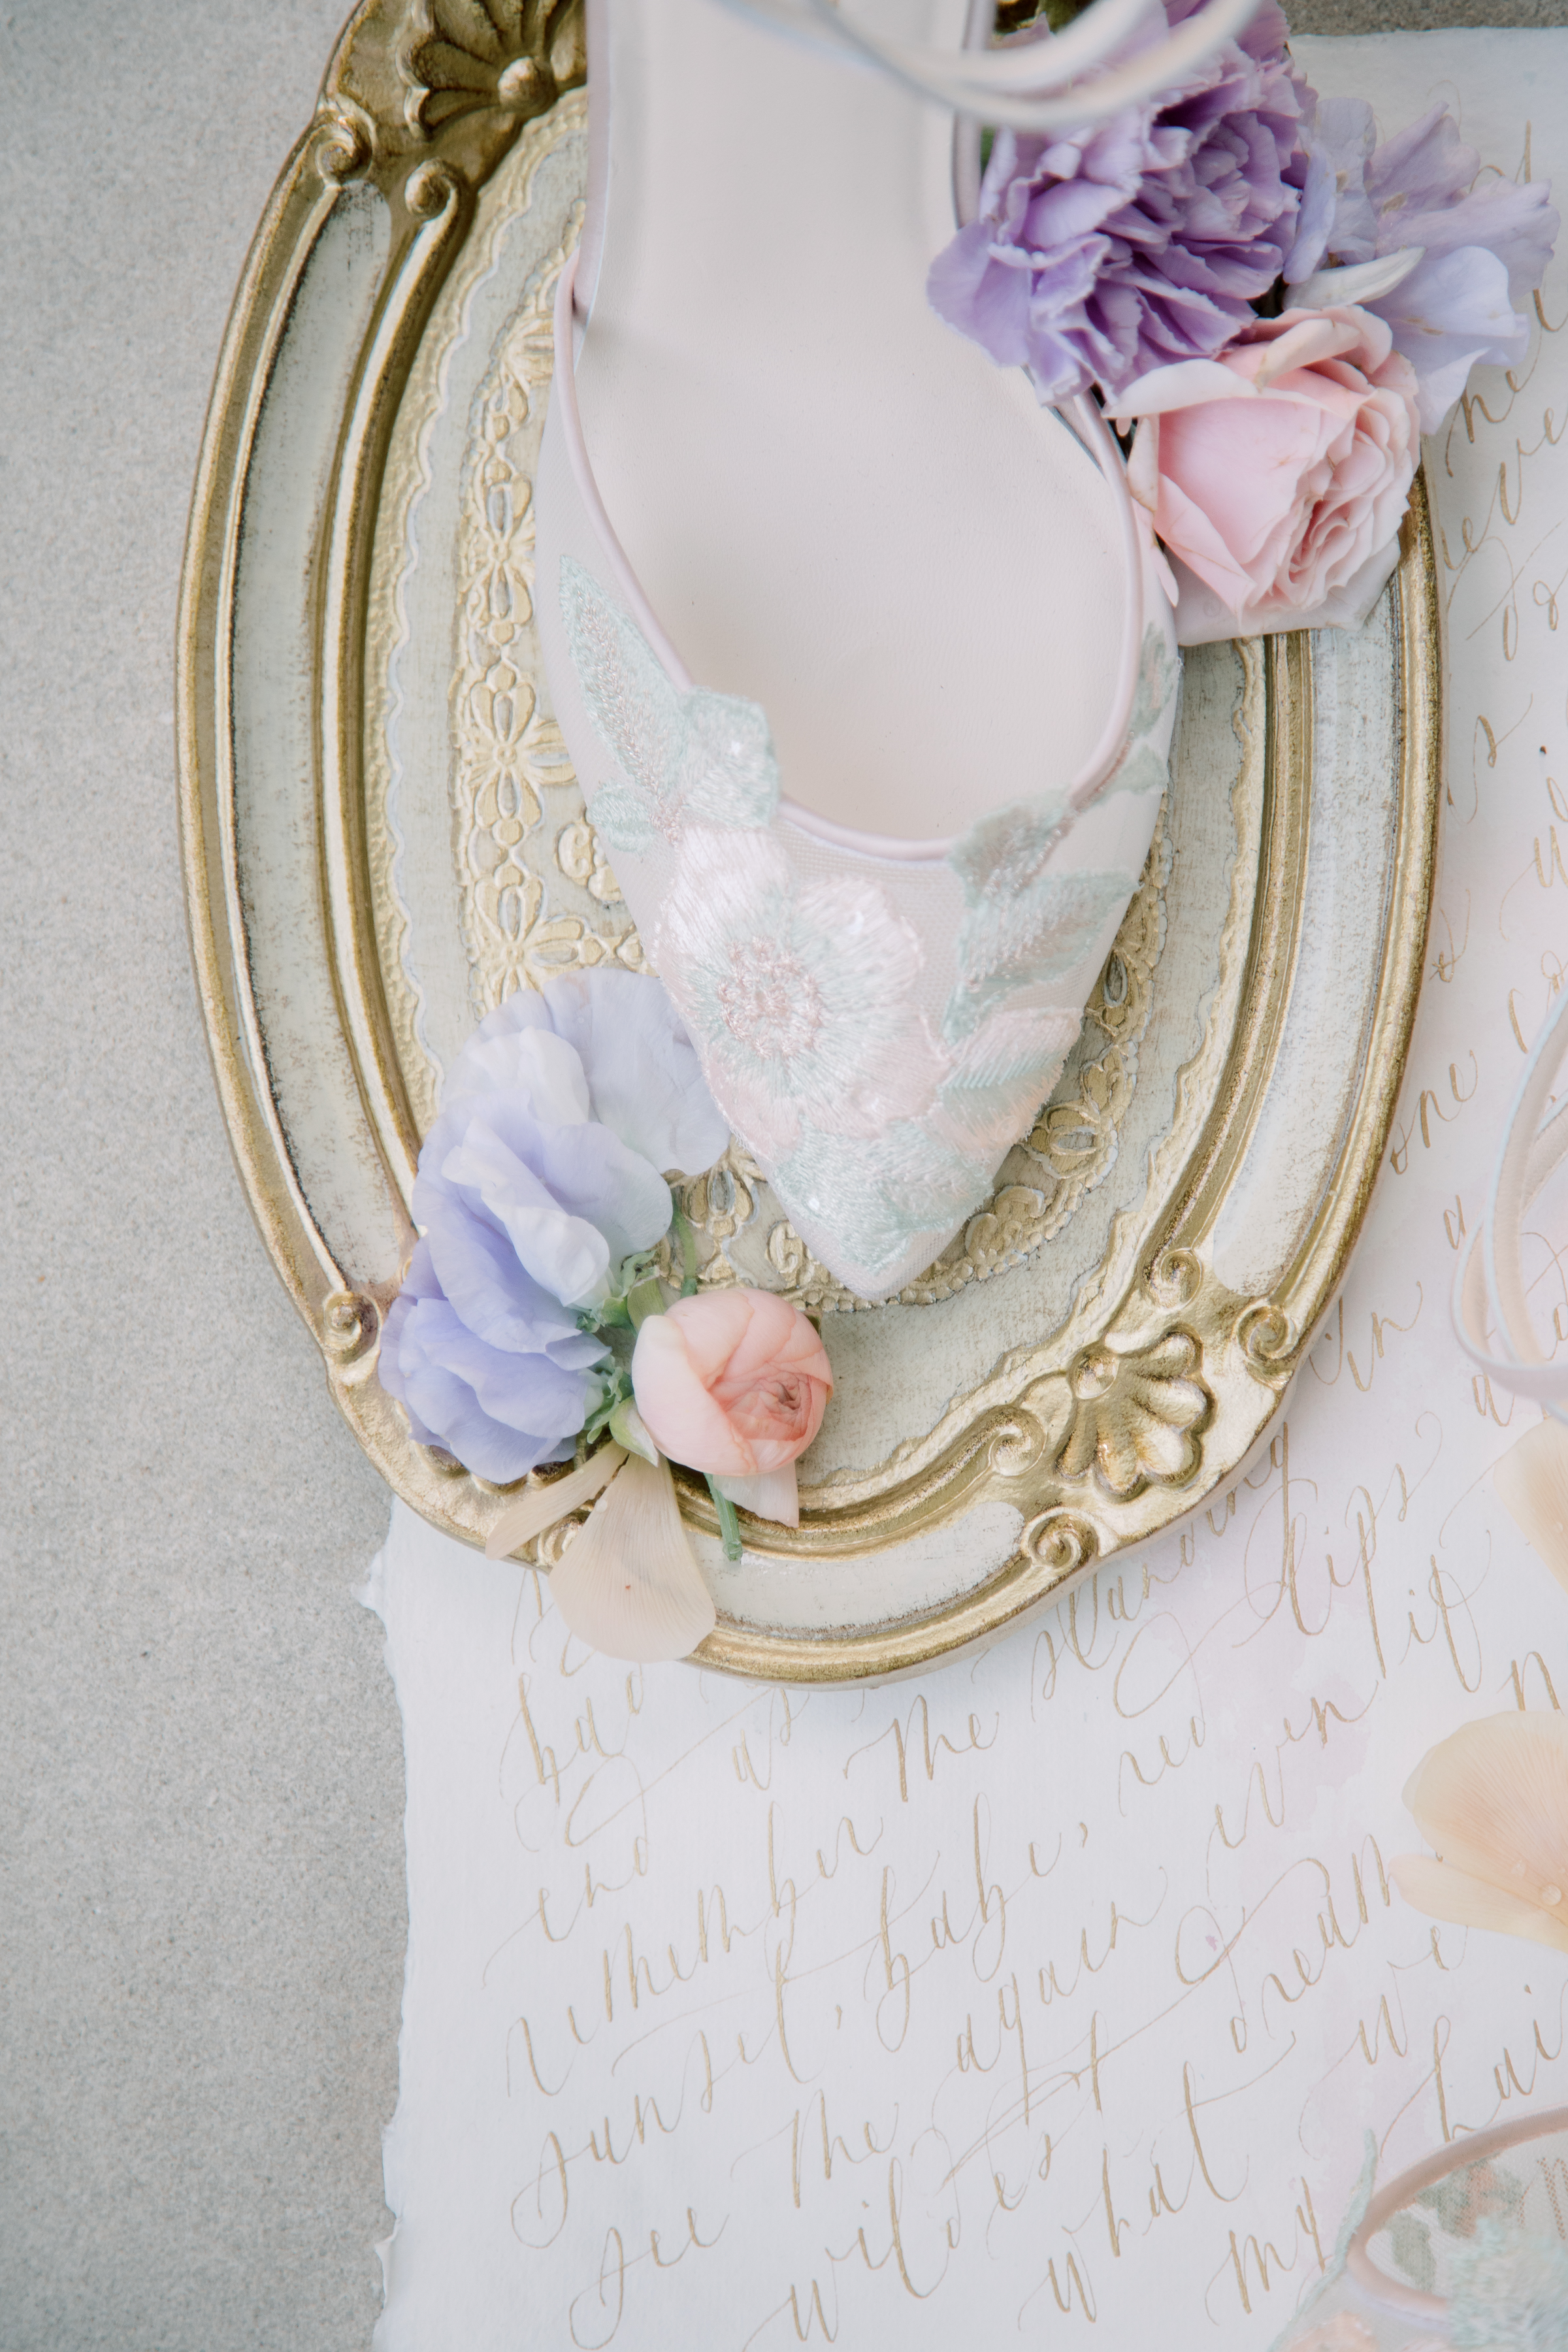 Faith Roper Photography and East Made Co Nashville wedding planner at the Estate at Cherokee Dock wedding inspired by Monet Hybrid Co-124.jpg